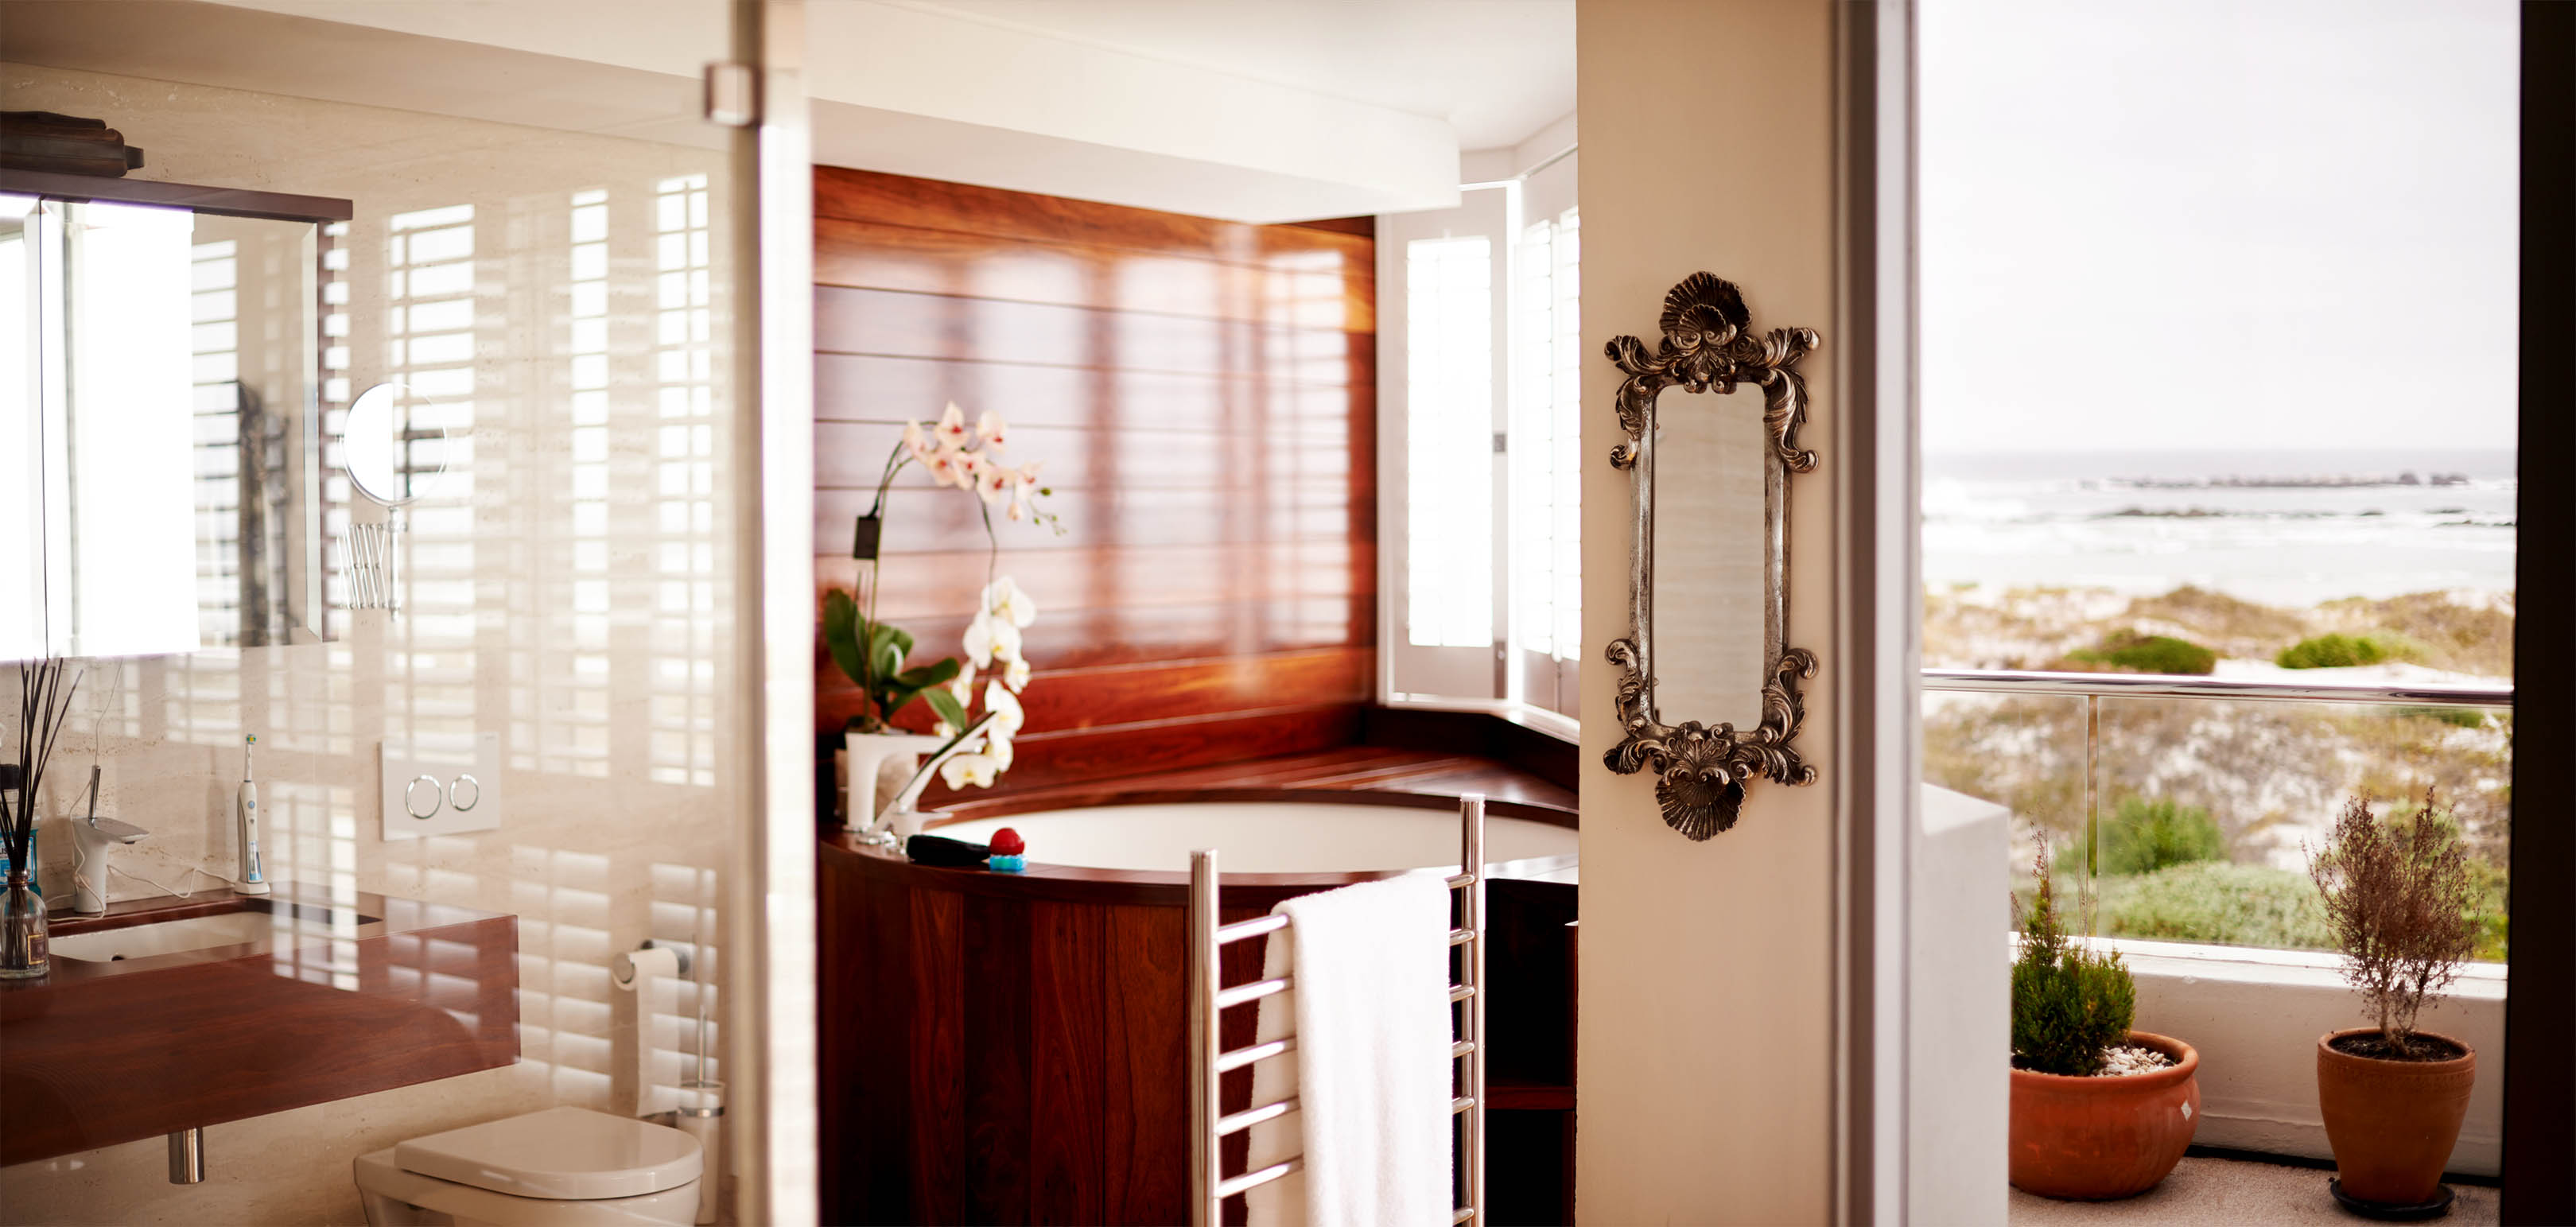 Timber Built-in Jacquzzi